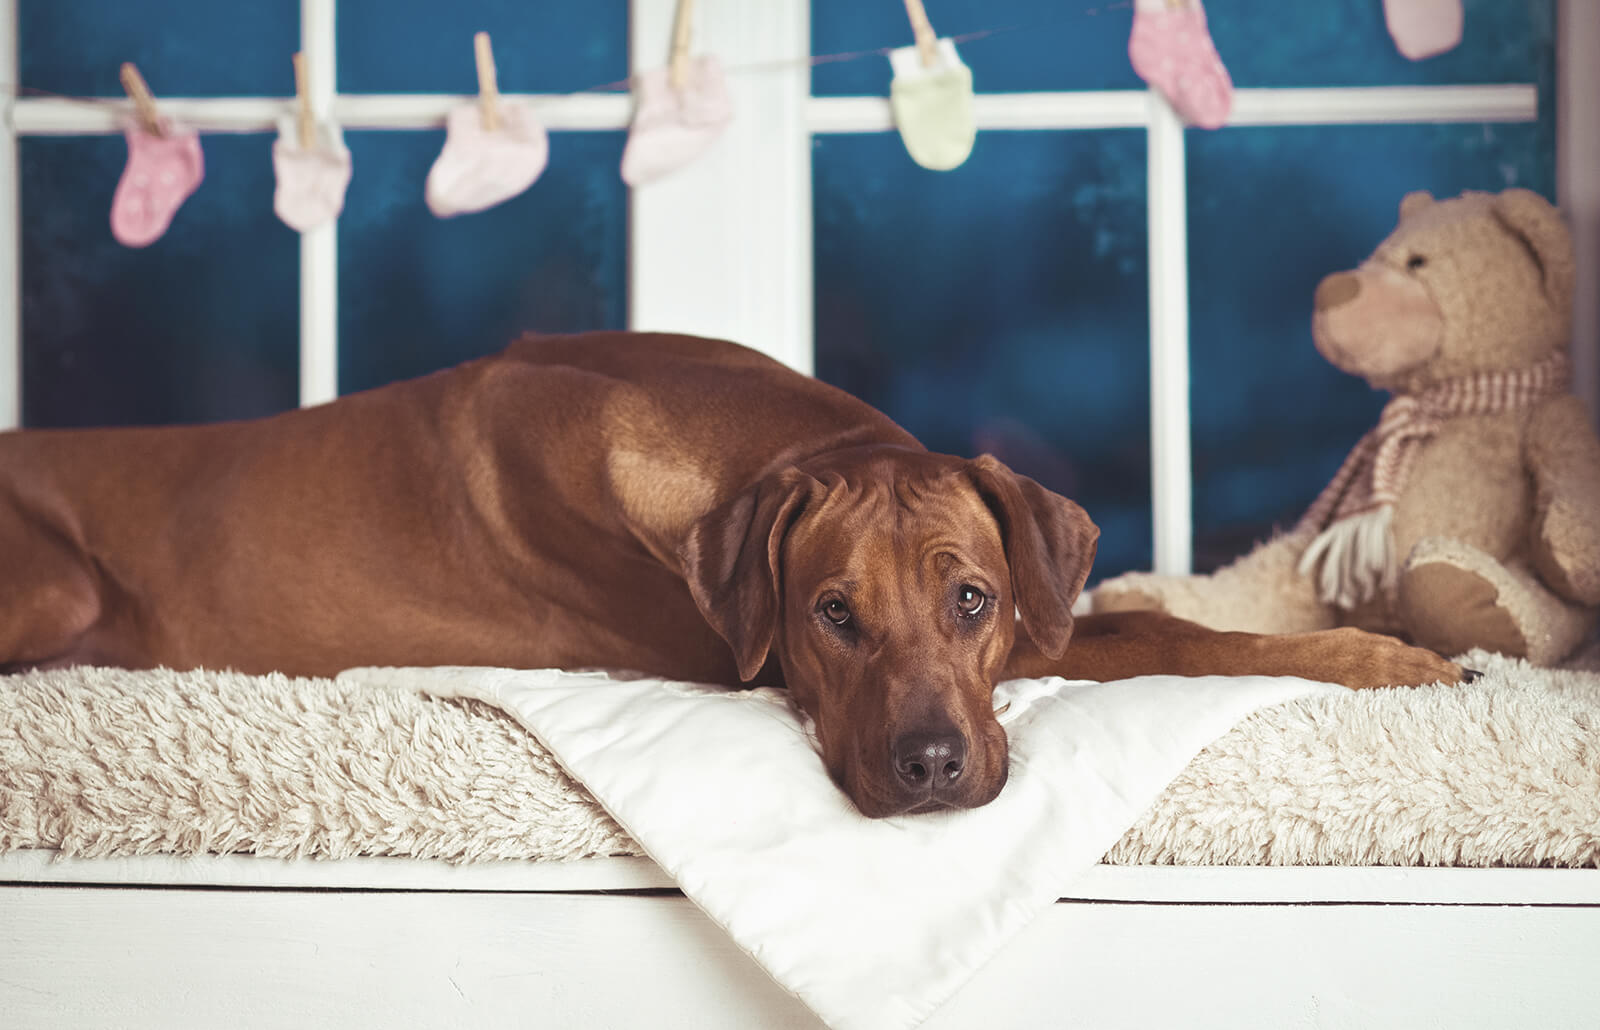 The Average Length of a Dog's Pregnancy | LoveToKnow